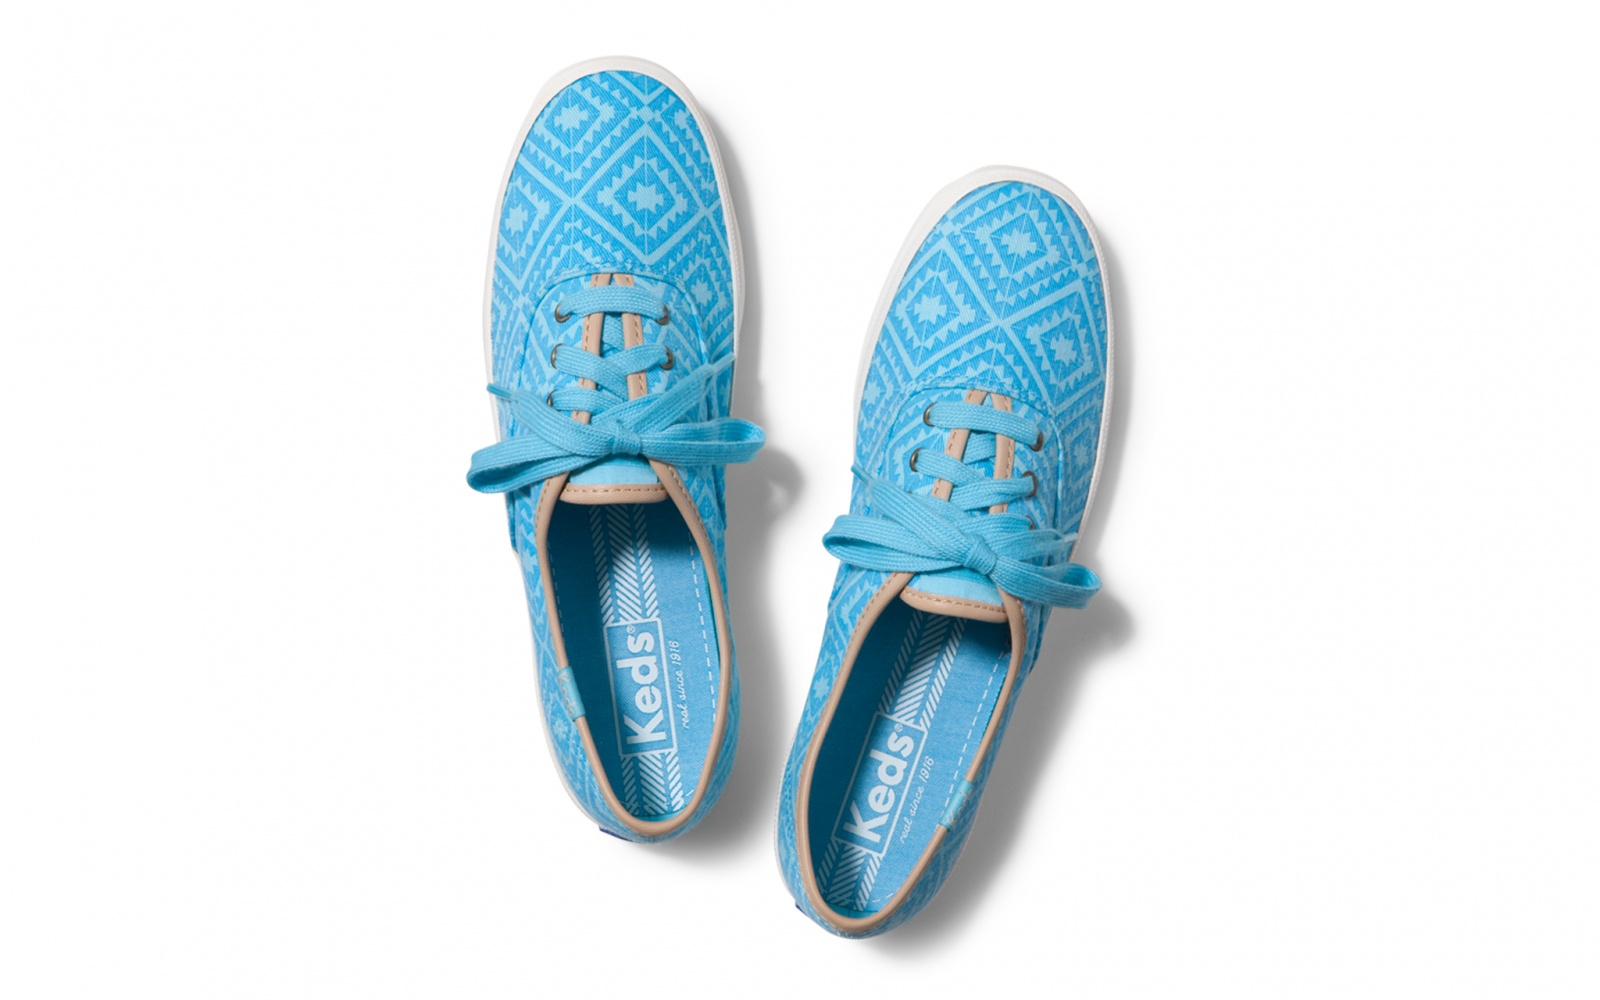 Keds women's lace-up sneakers